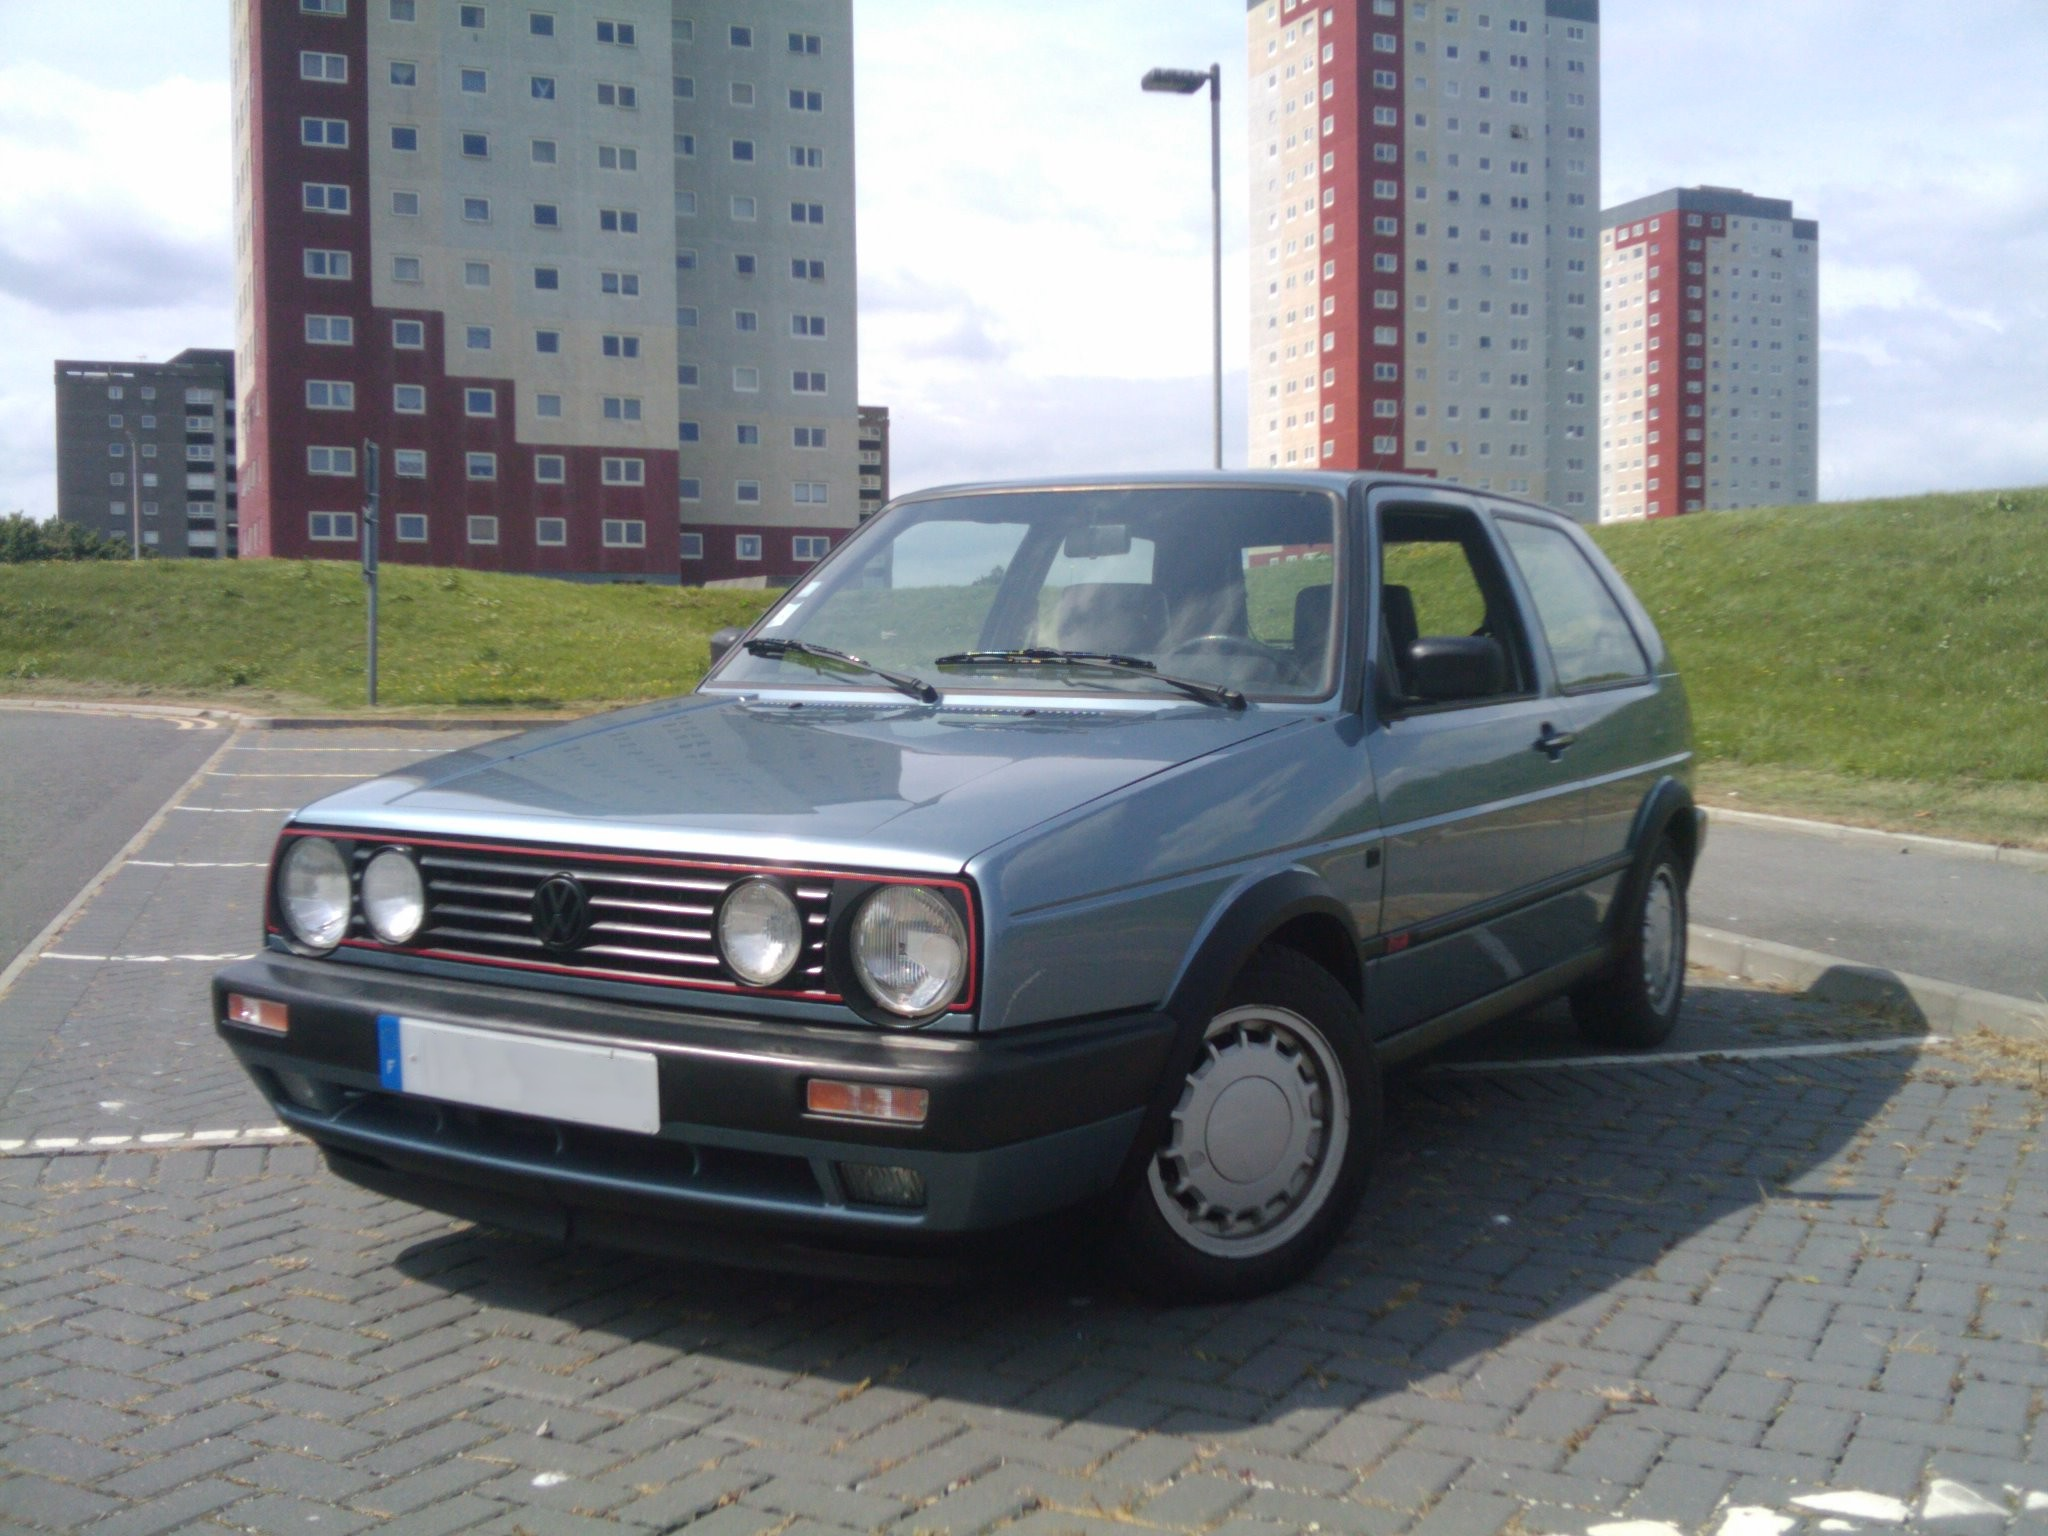 The Old-School review, the Mk2 Volkswagen Golf GTI 8V | JustDrive There